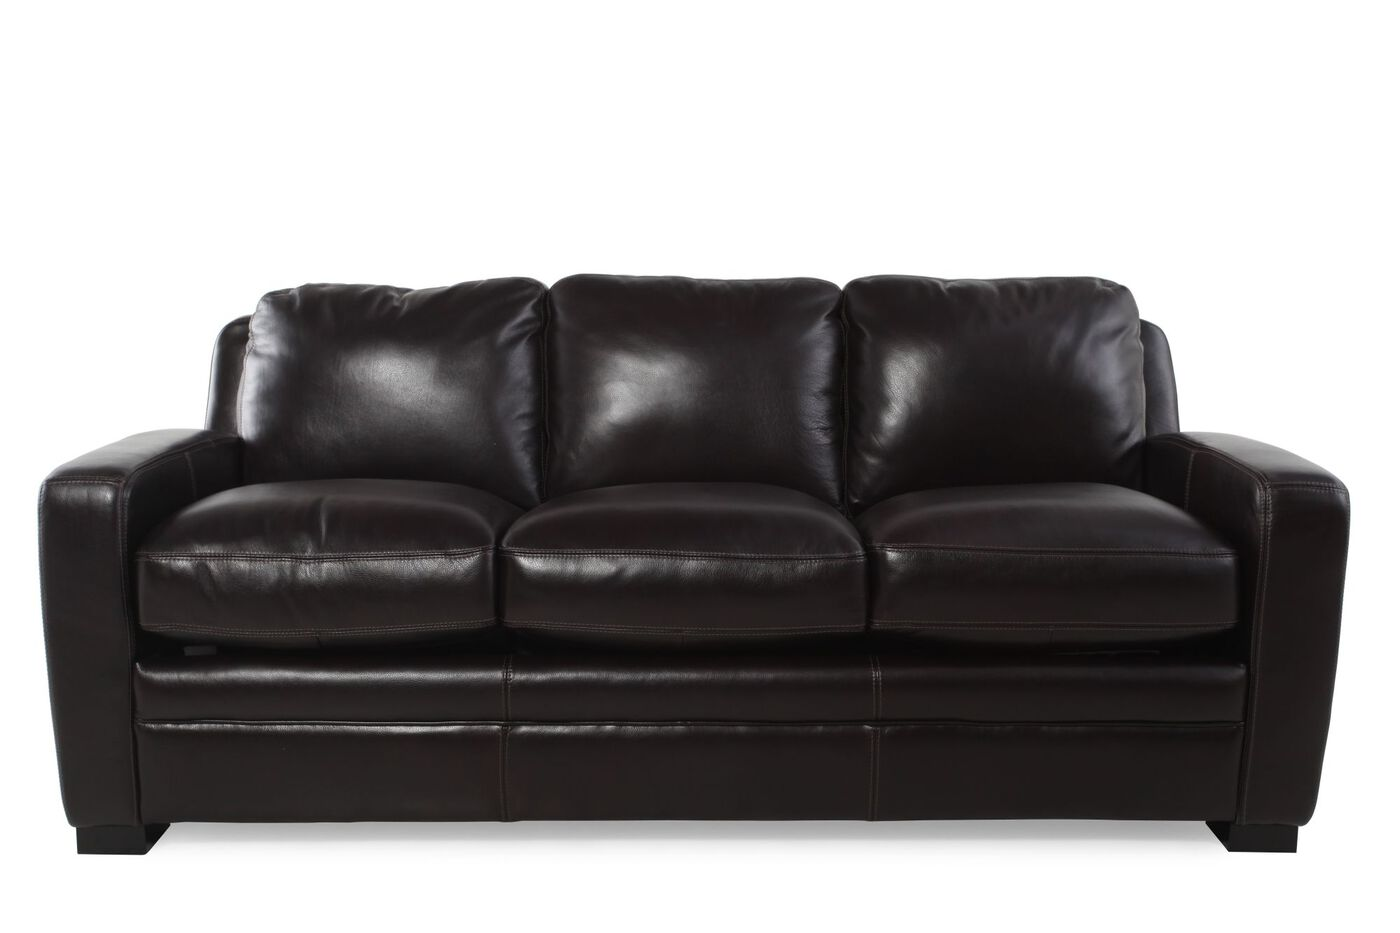 Traditional Leather Queen Sleeper Sofa In Black Mathis